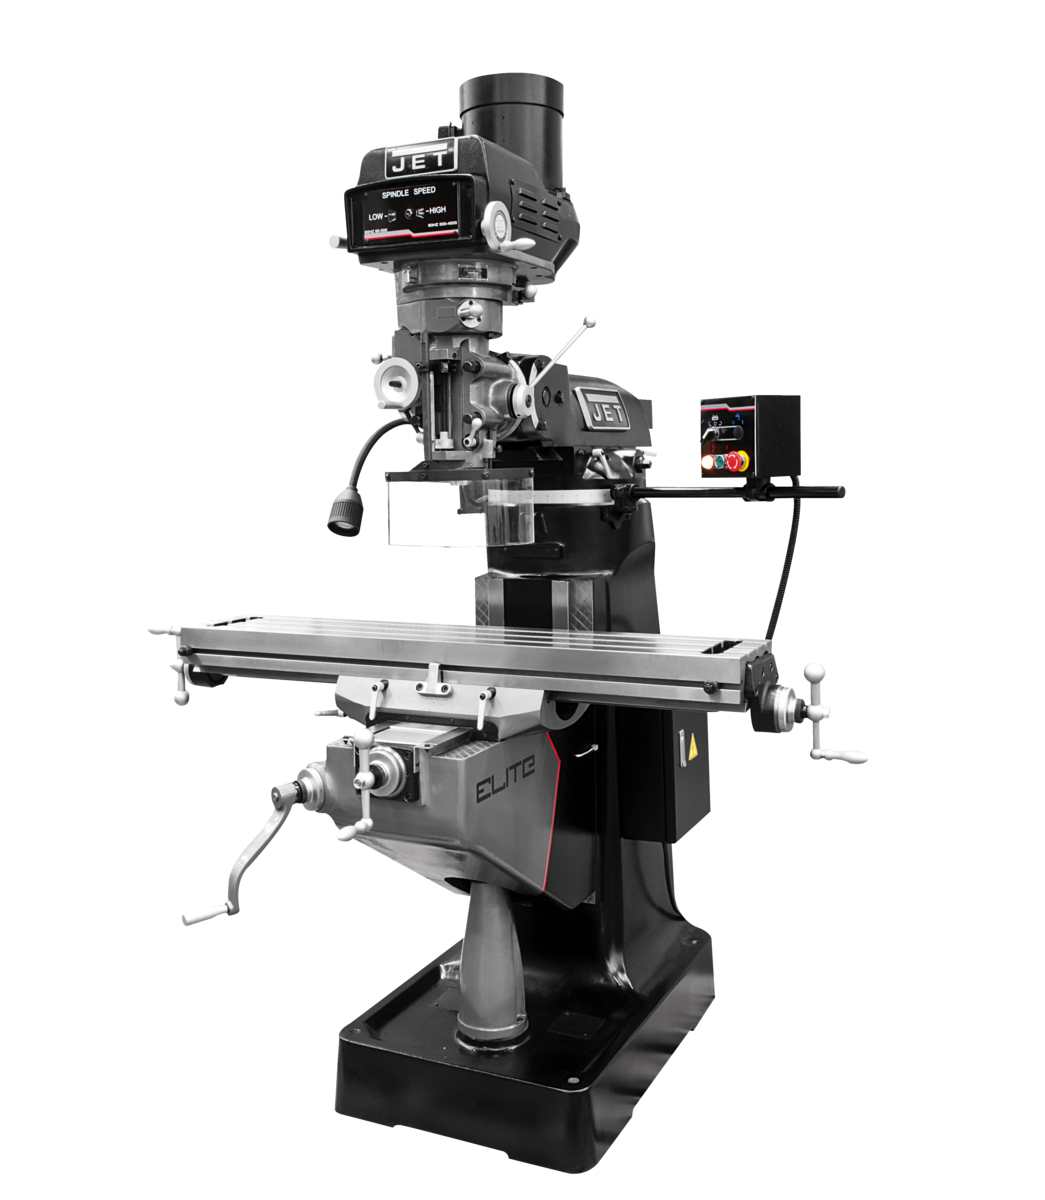 ETM-949 Mill with 3-Axis ACU-RITE 303  (Quill) DRO and X-Axis JET Powerfeed